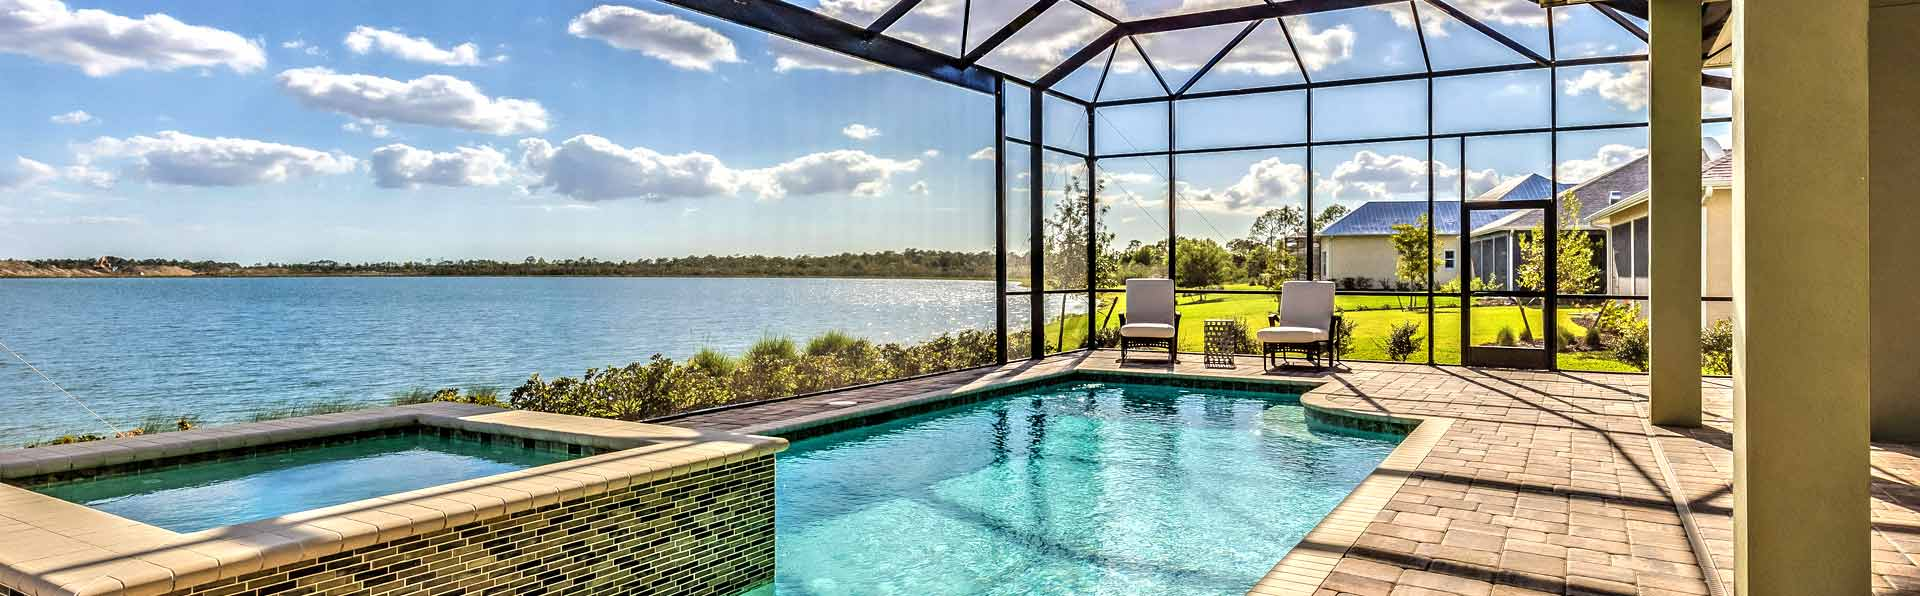 Screened in Swimming Pool overlooking a large lake